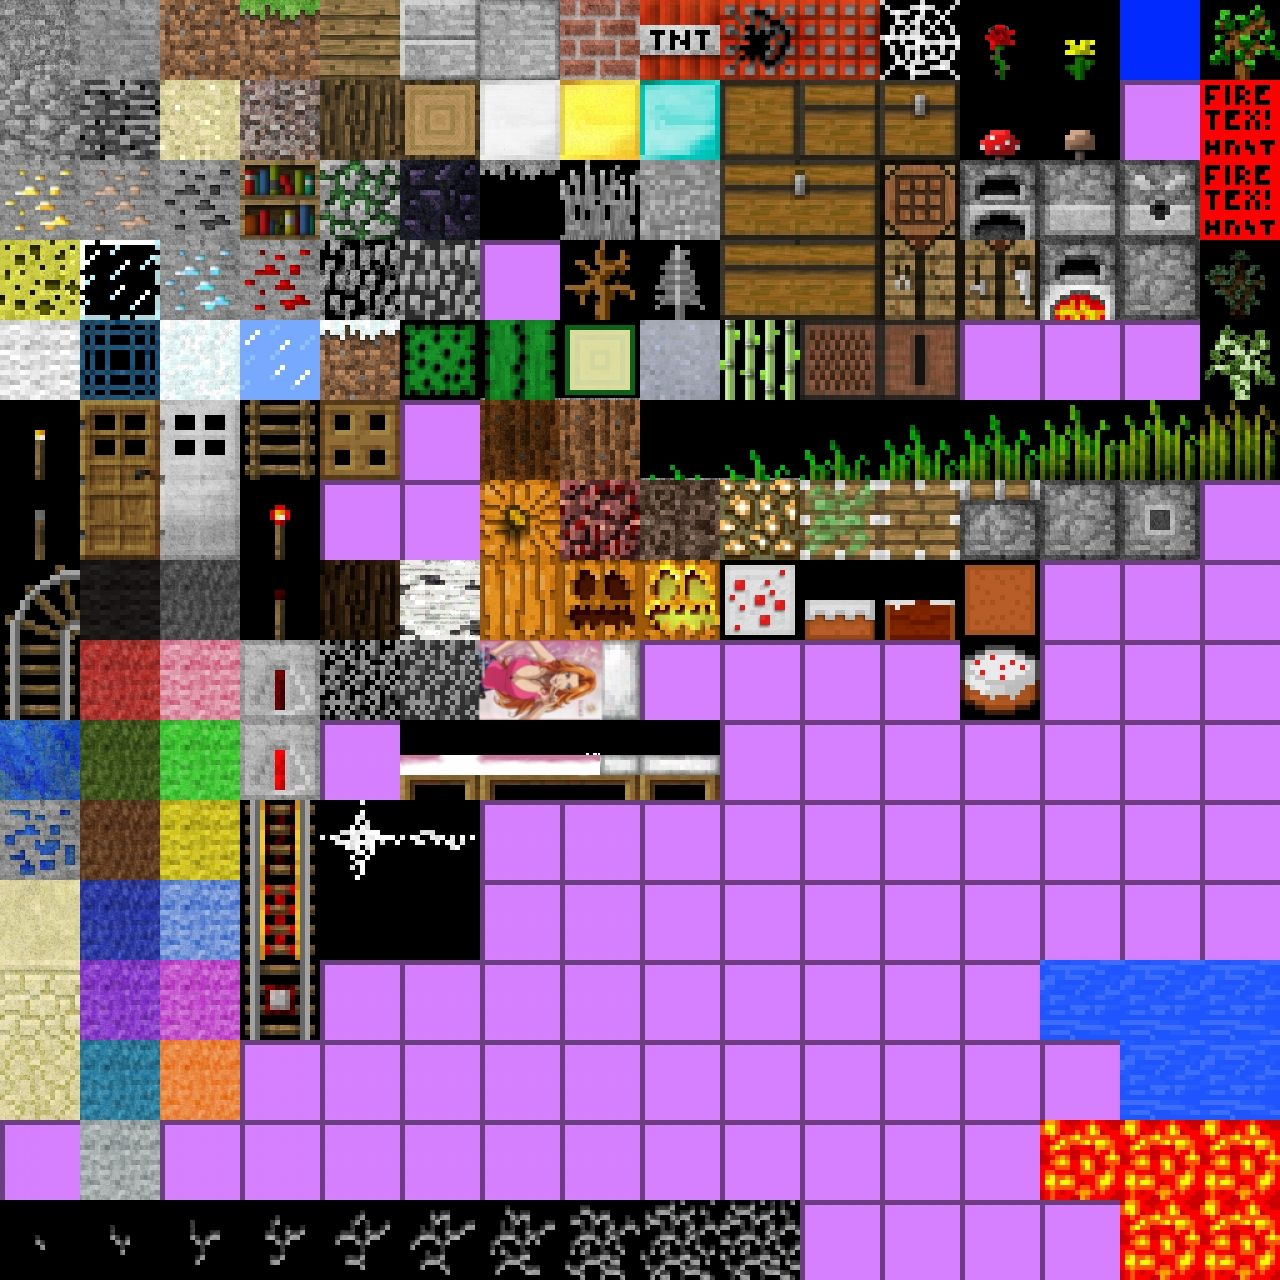 texture packs for minecraft pe download: www.boriall.com/texture-packs-for-minecraft-pe-download